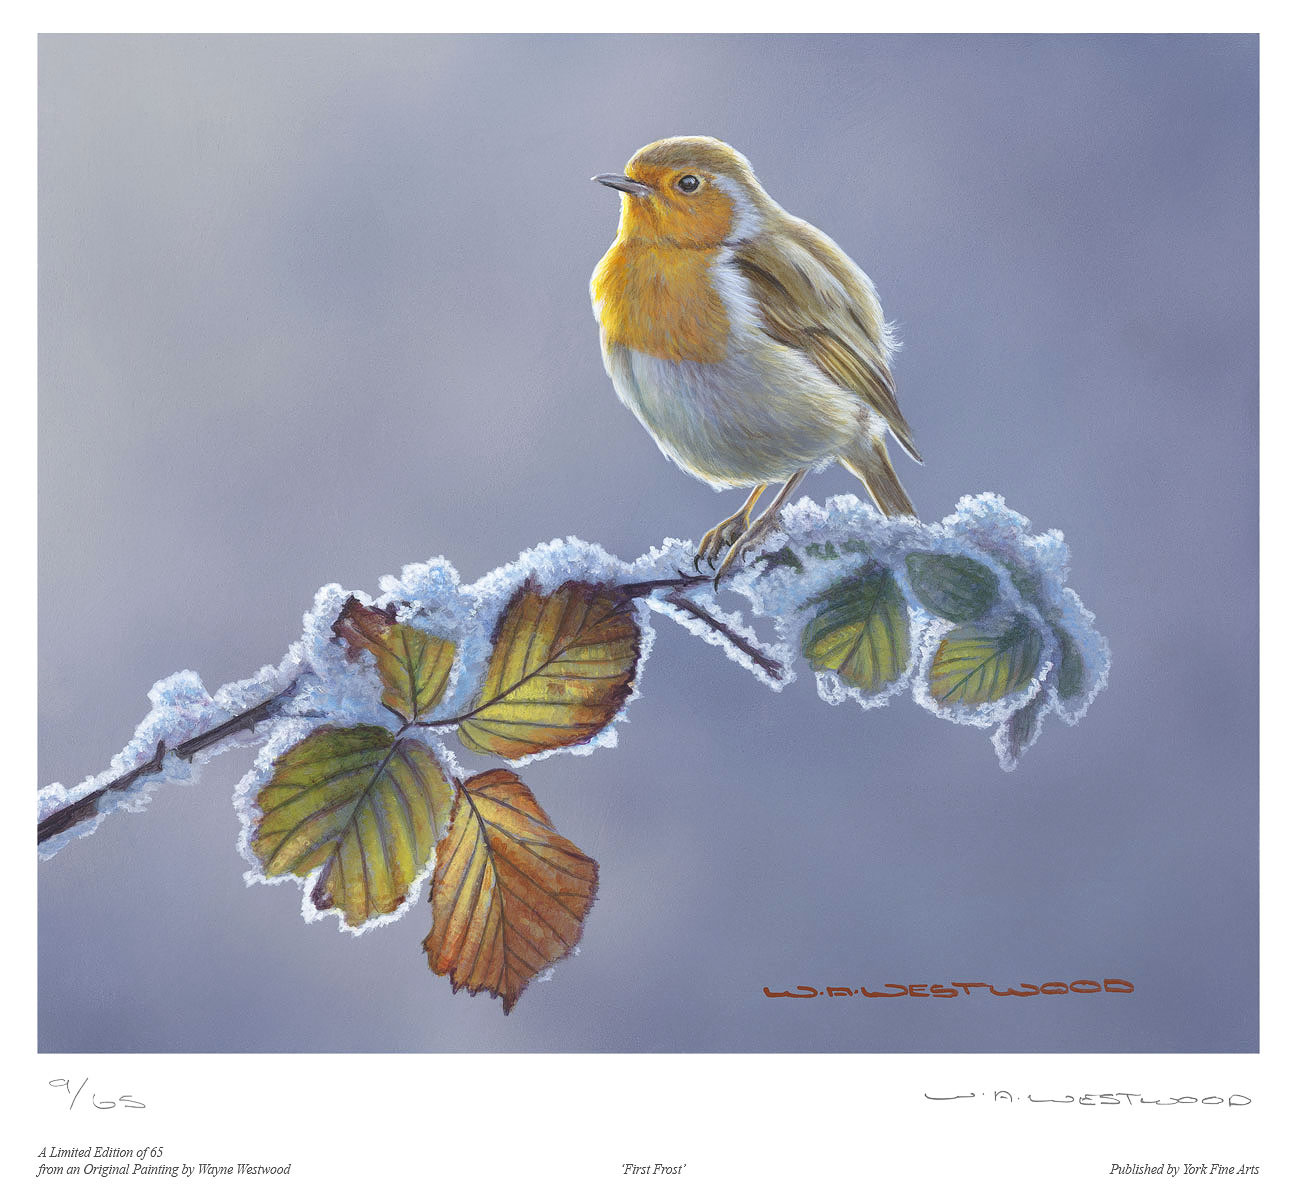 Wayne Westwood, Signed limited edition print, First Frost, click to enlarge